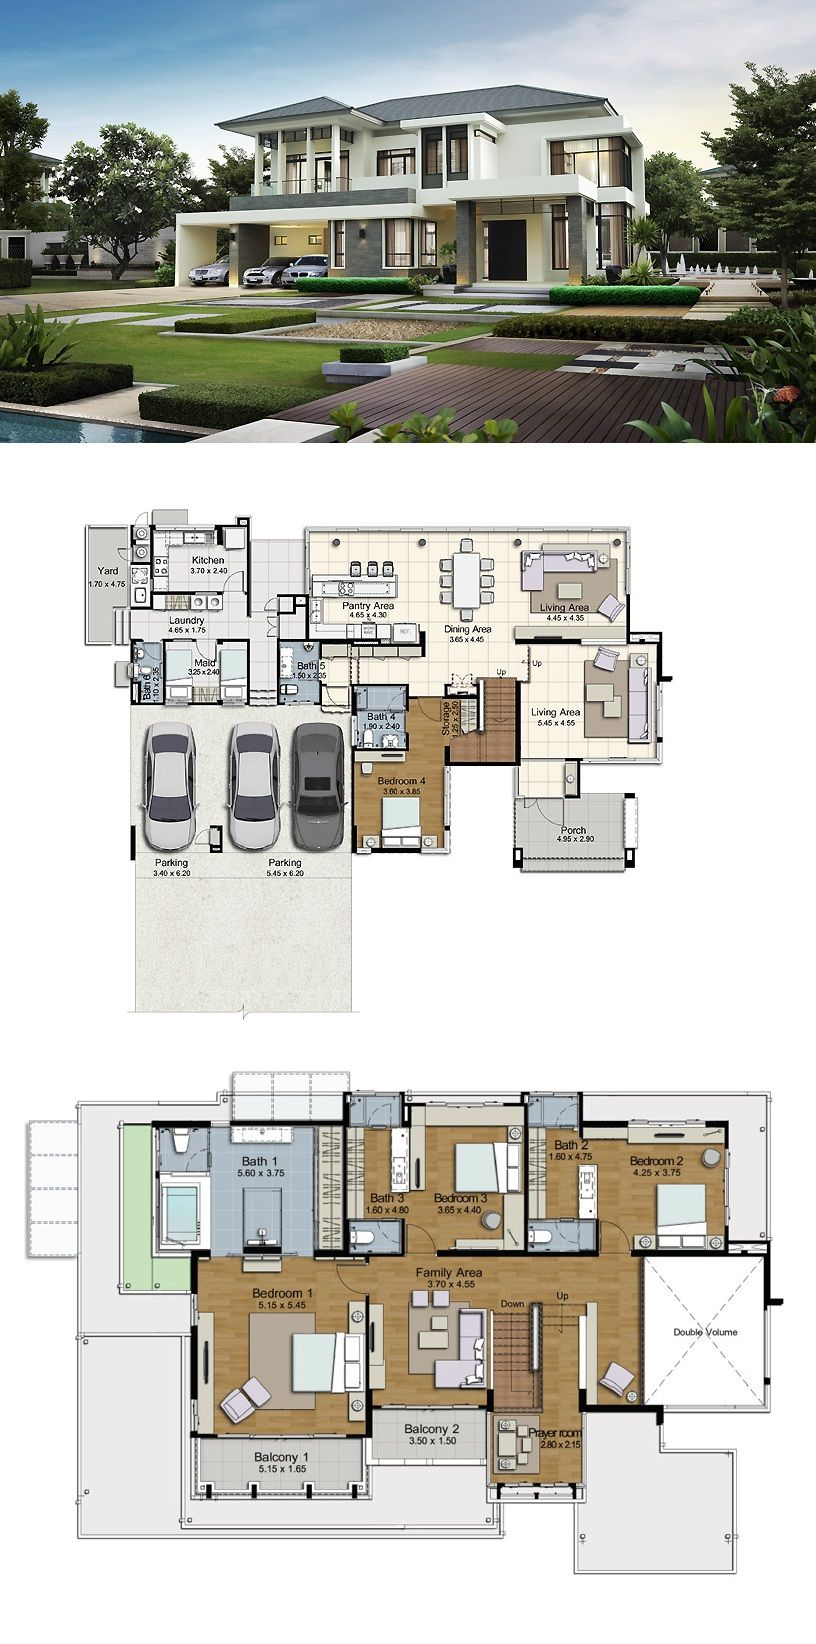 Land And Houses House Designs Exterior My House Plans Modern House Plans